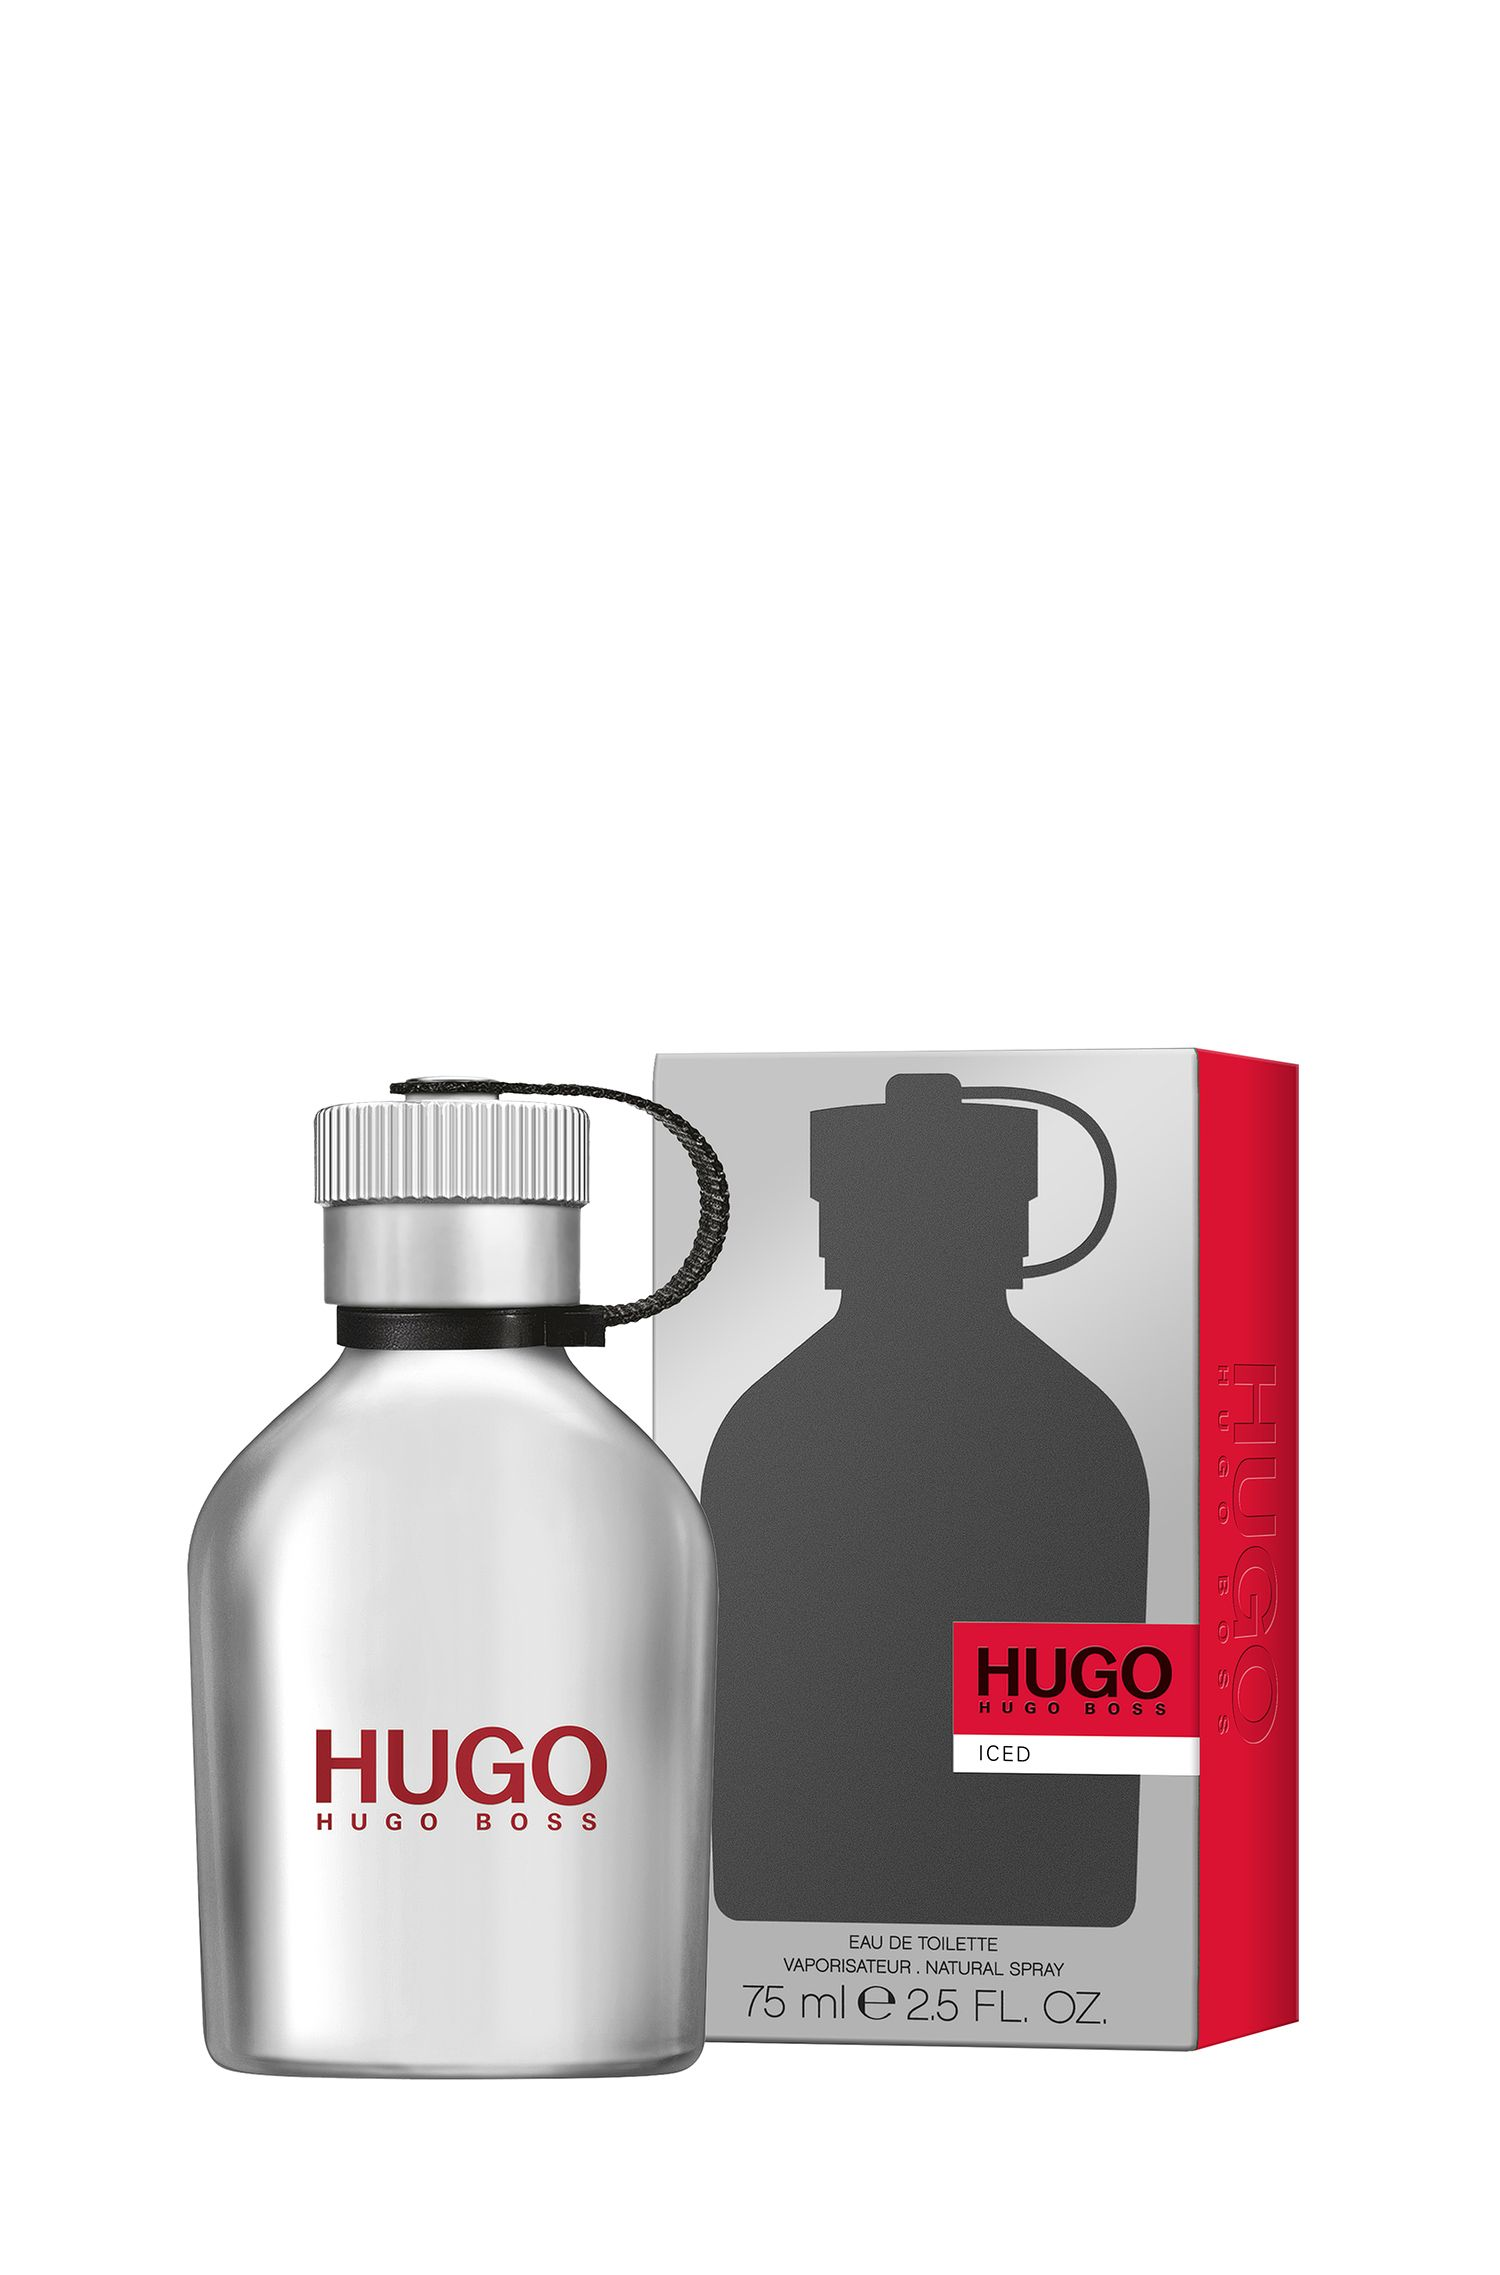 Eau de toilette HUGO Iced da 75 ml